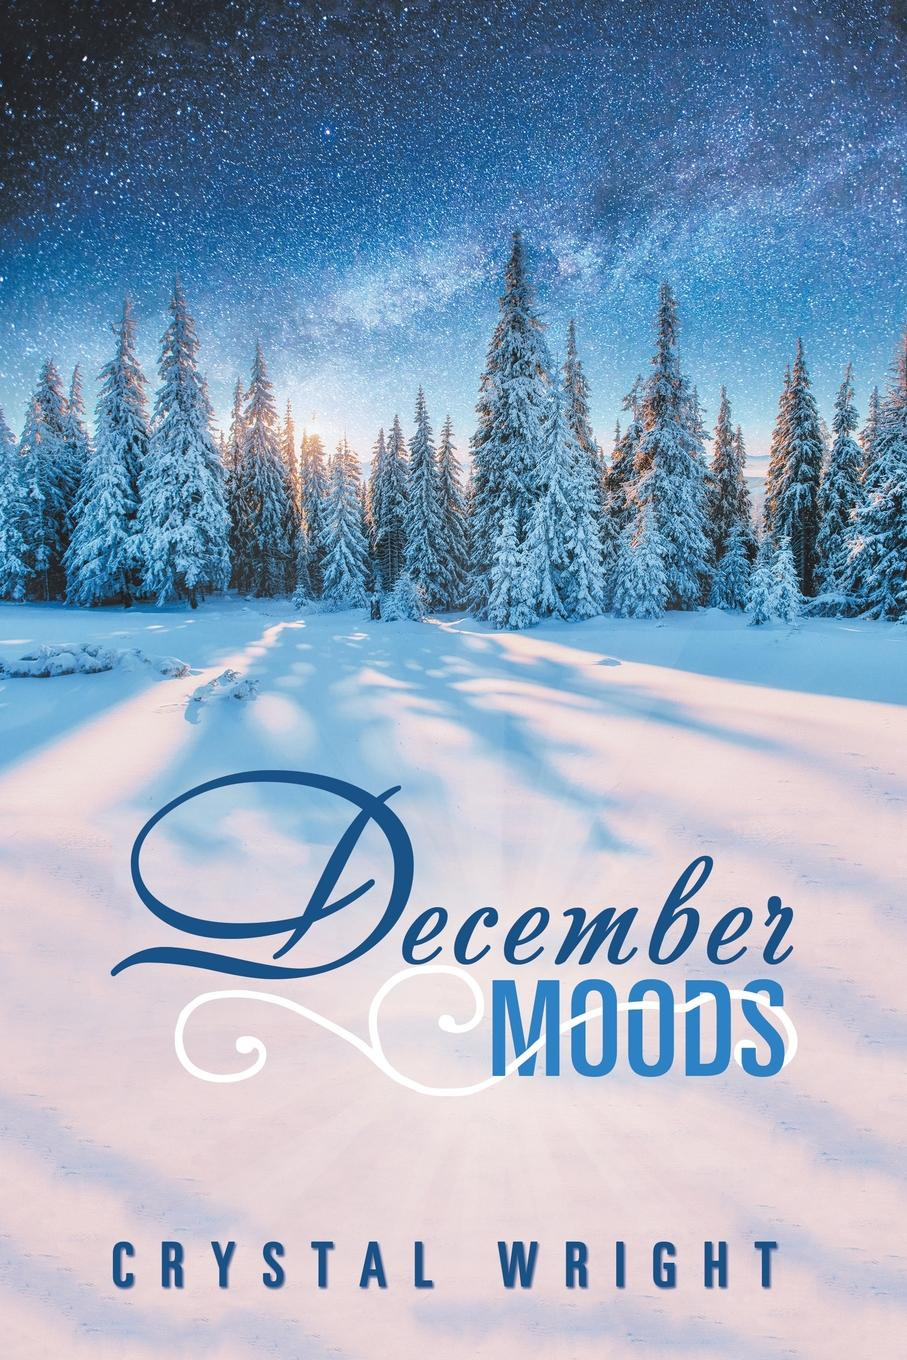 Crystal Wright December Moods good little book the